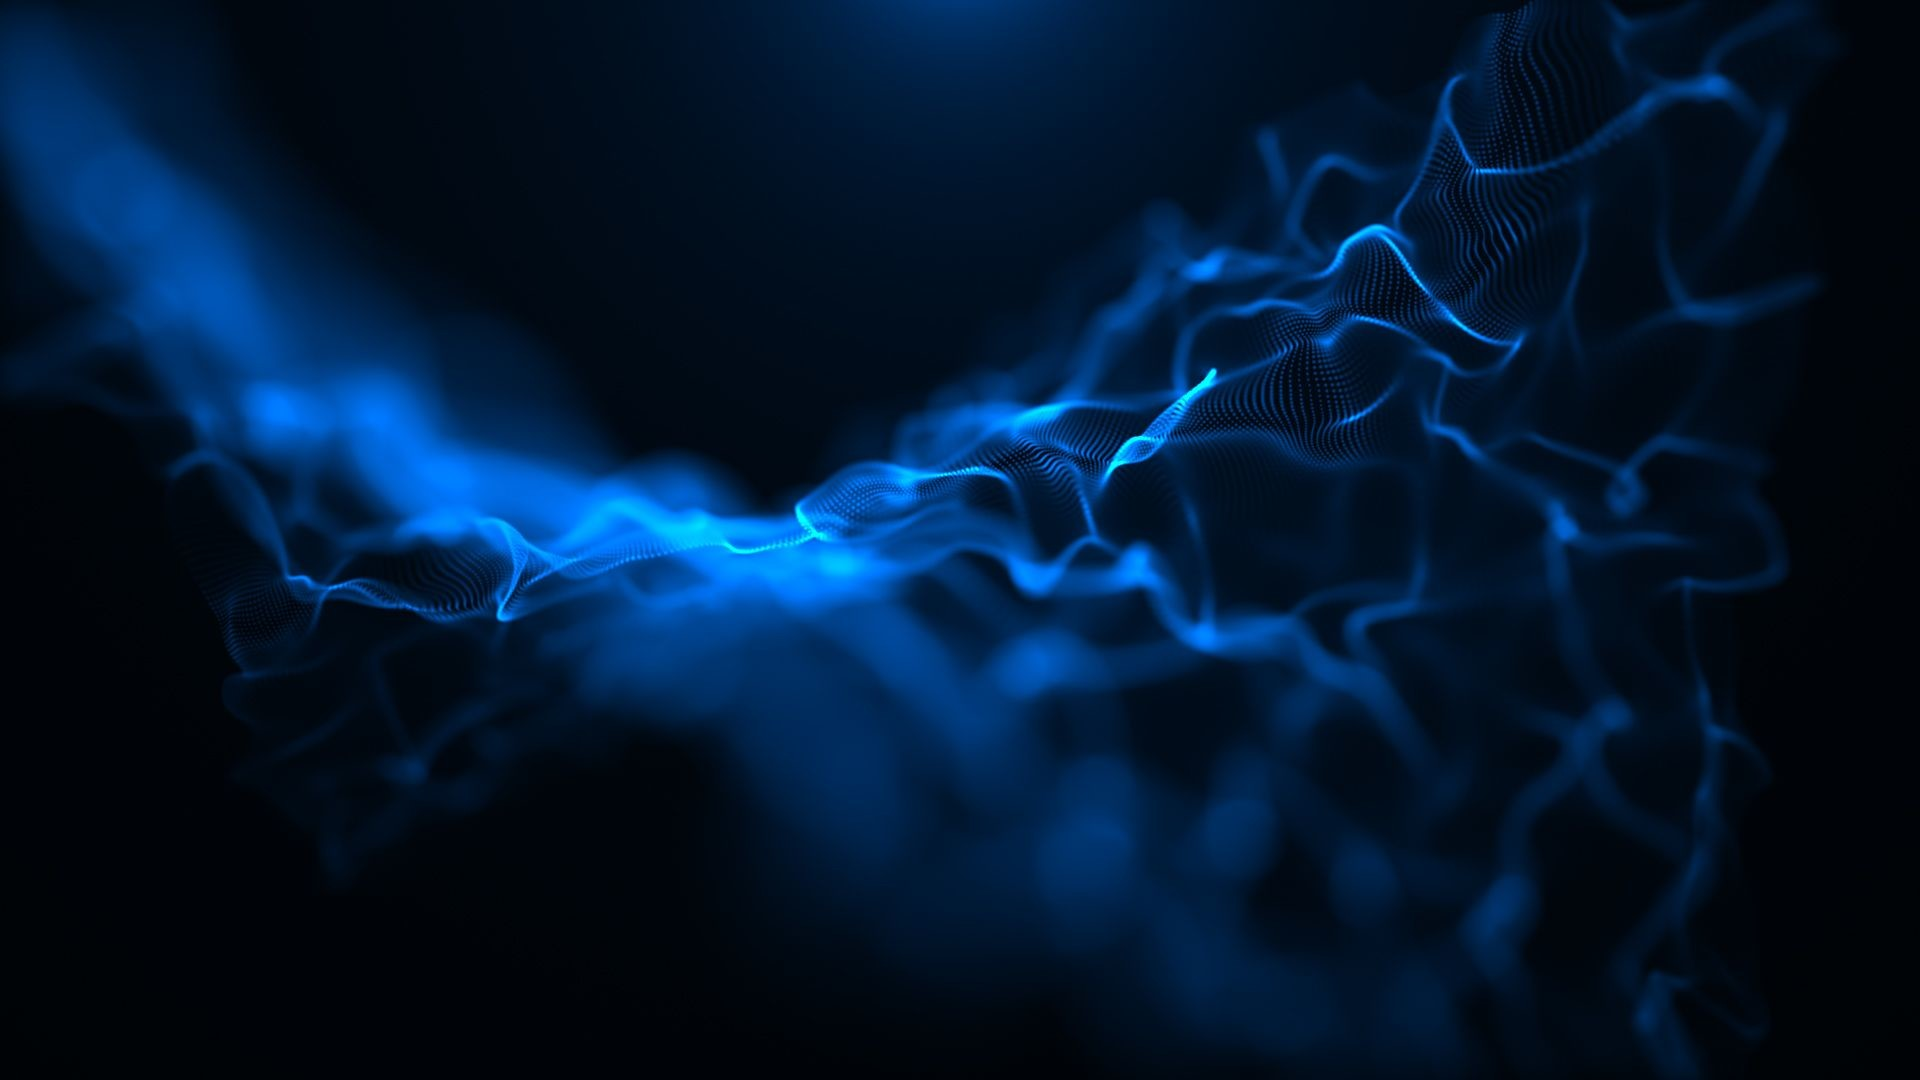 Awesome Blue Backgrounds 71 Images